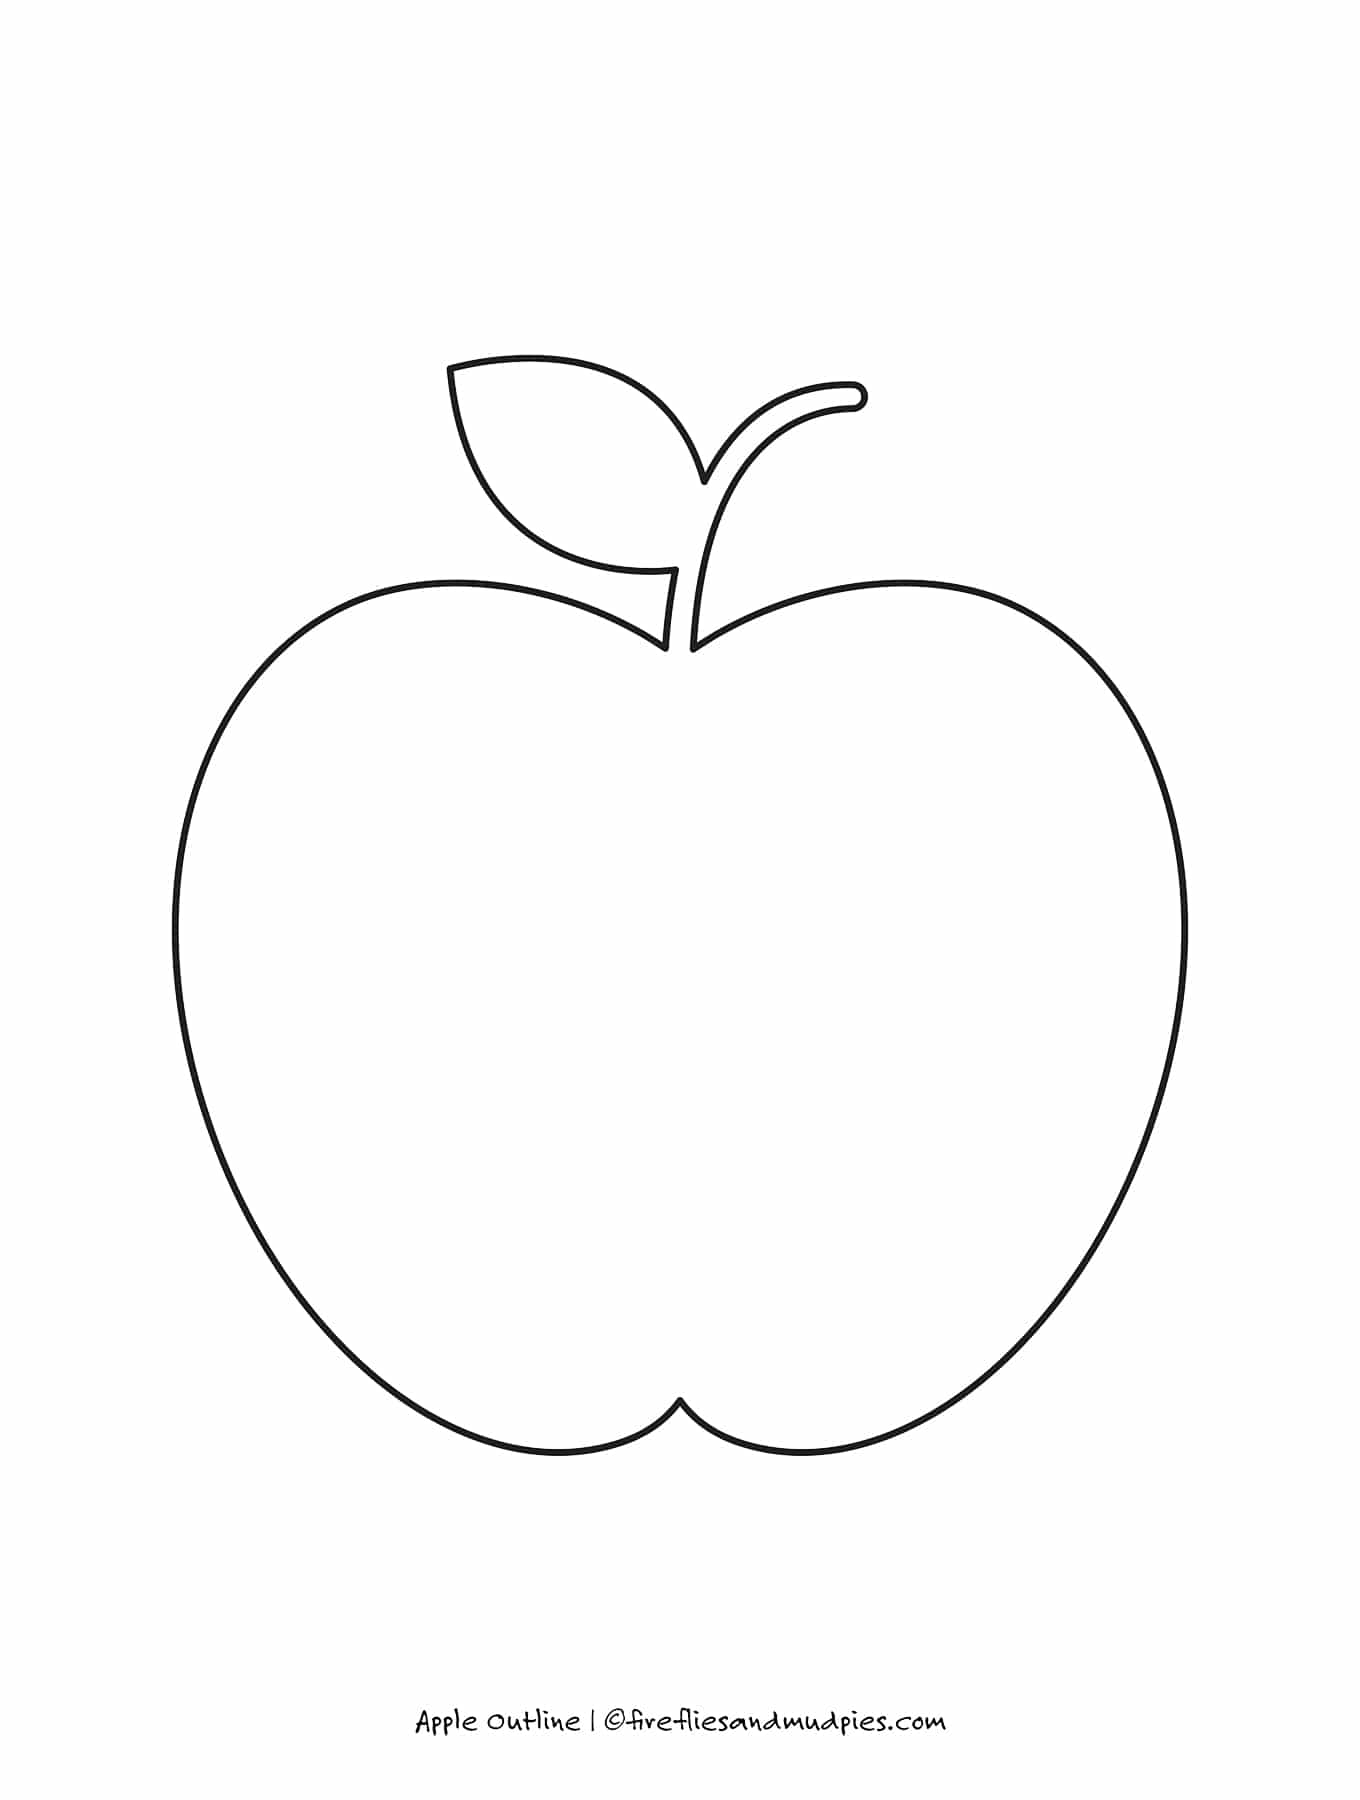 Free Printable Apple Outline For Crafts Fireflies And Mud Pies